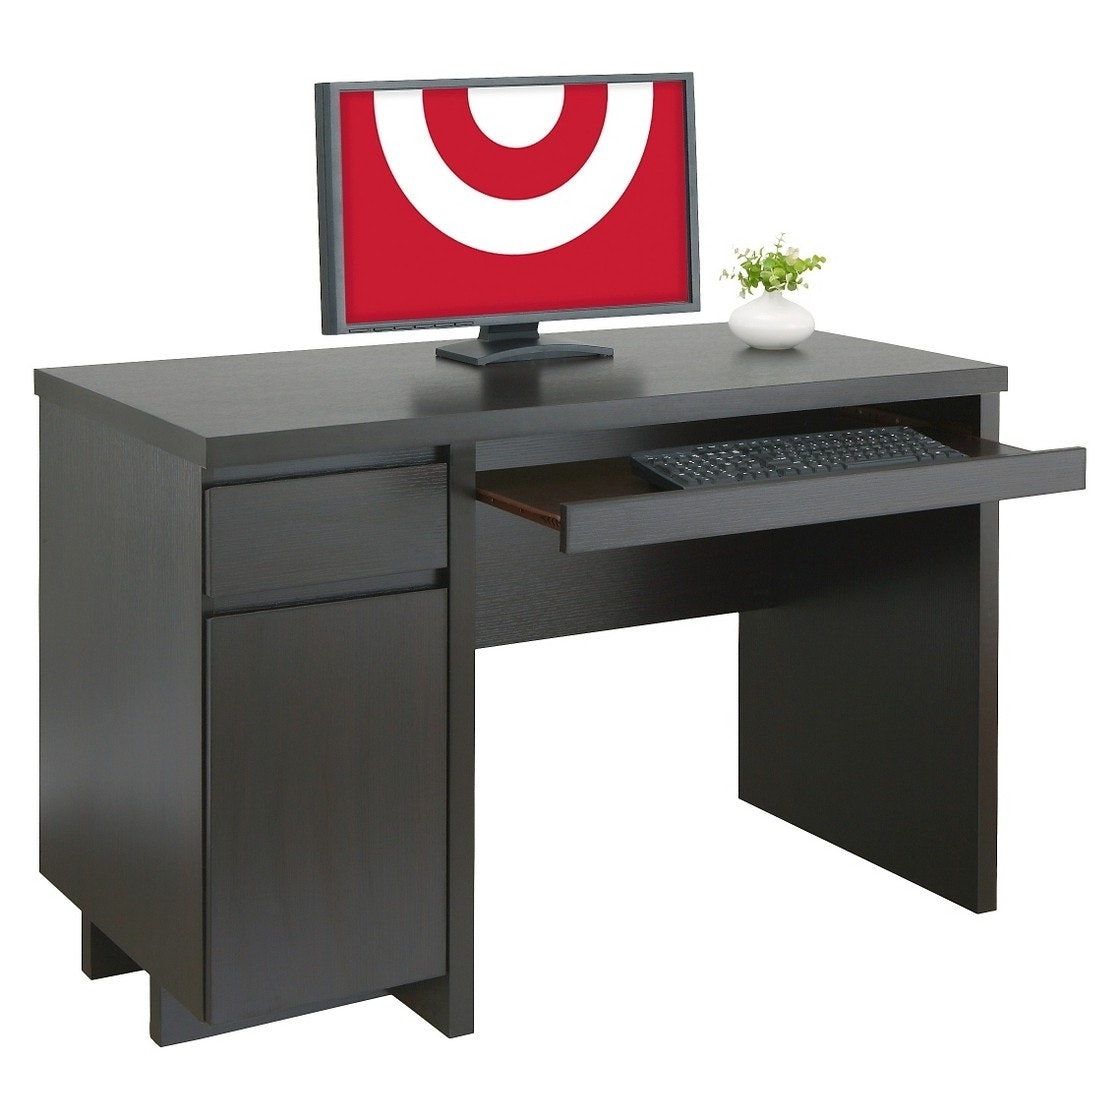 Most Popular Small Computer Desk Target The Best Desks Stories Foa Shocking Regarding Computer Desks Target (View 13 of 20)